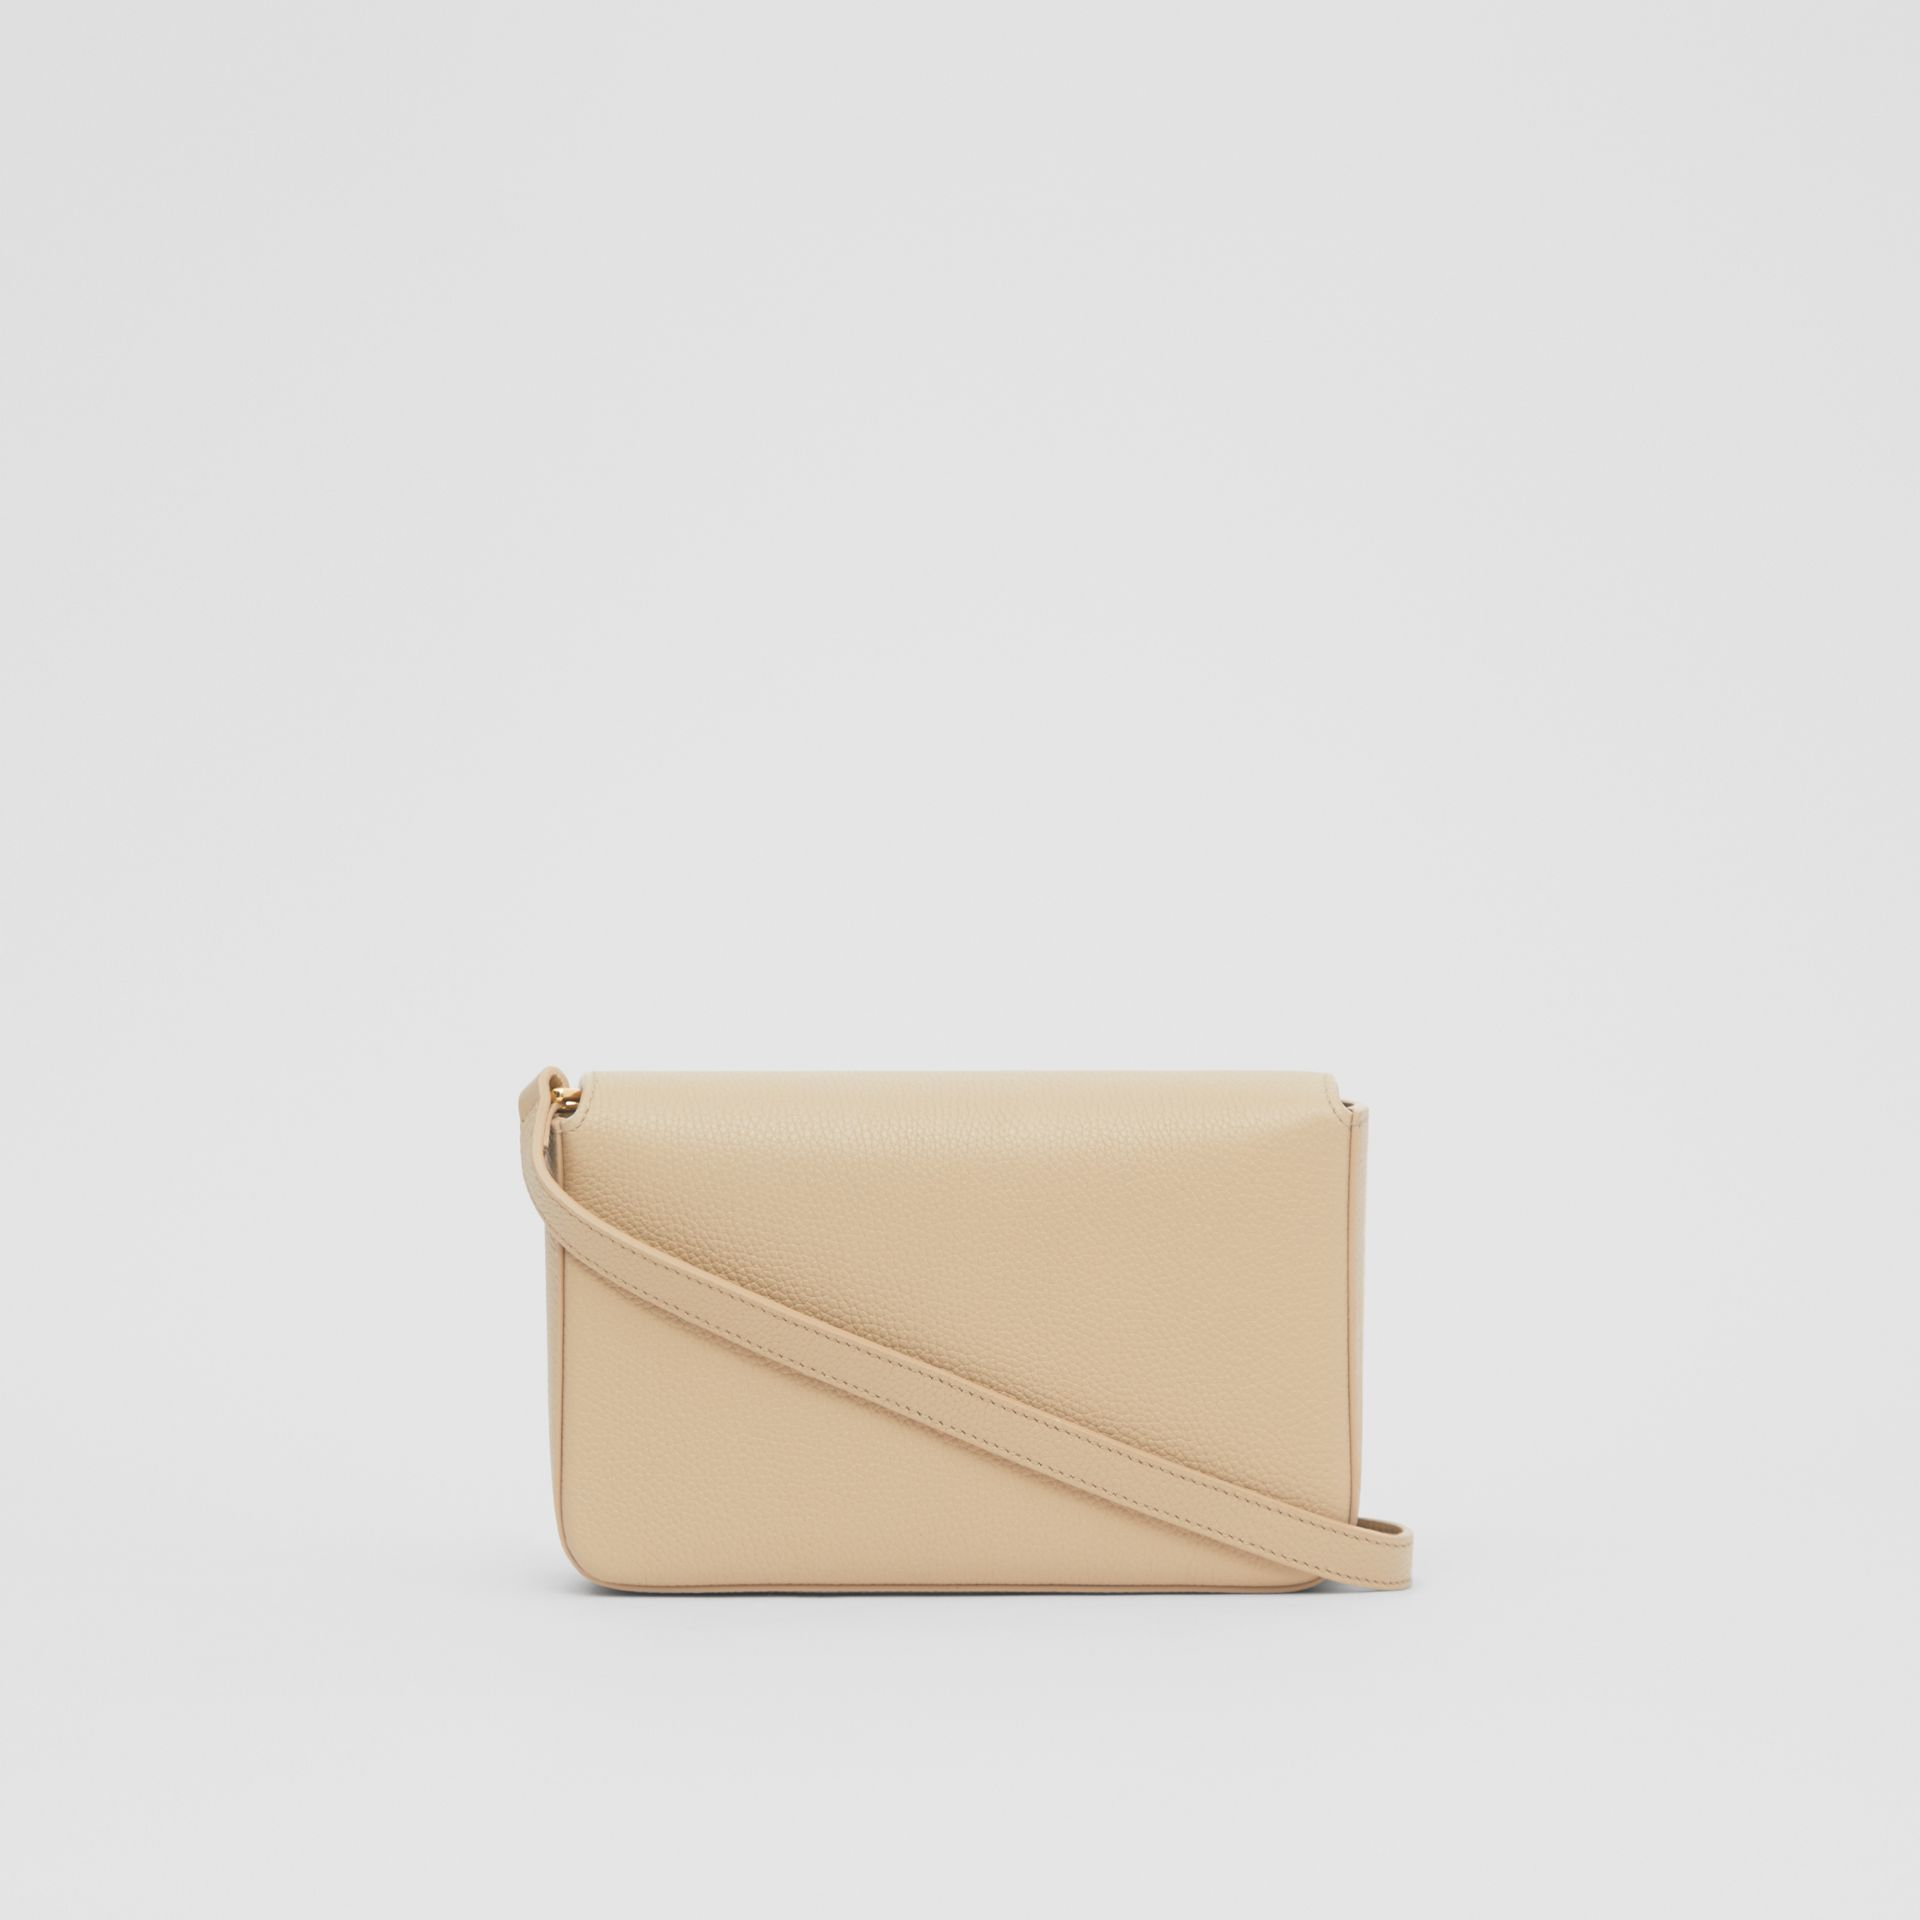 Small Leather and Vintage Check Crossbody Bag in Light Beige - Women | Burberry United Kingdom - gallery image 5